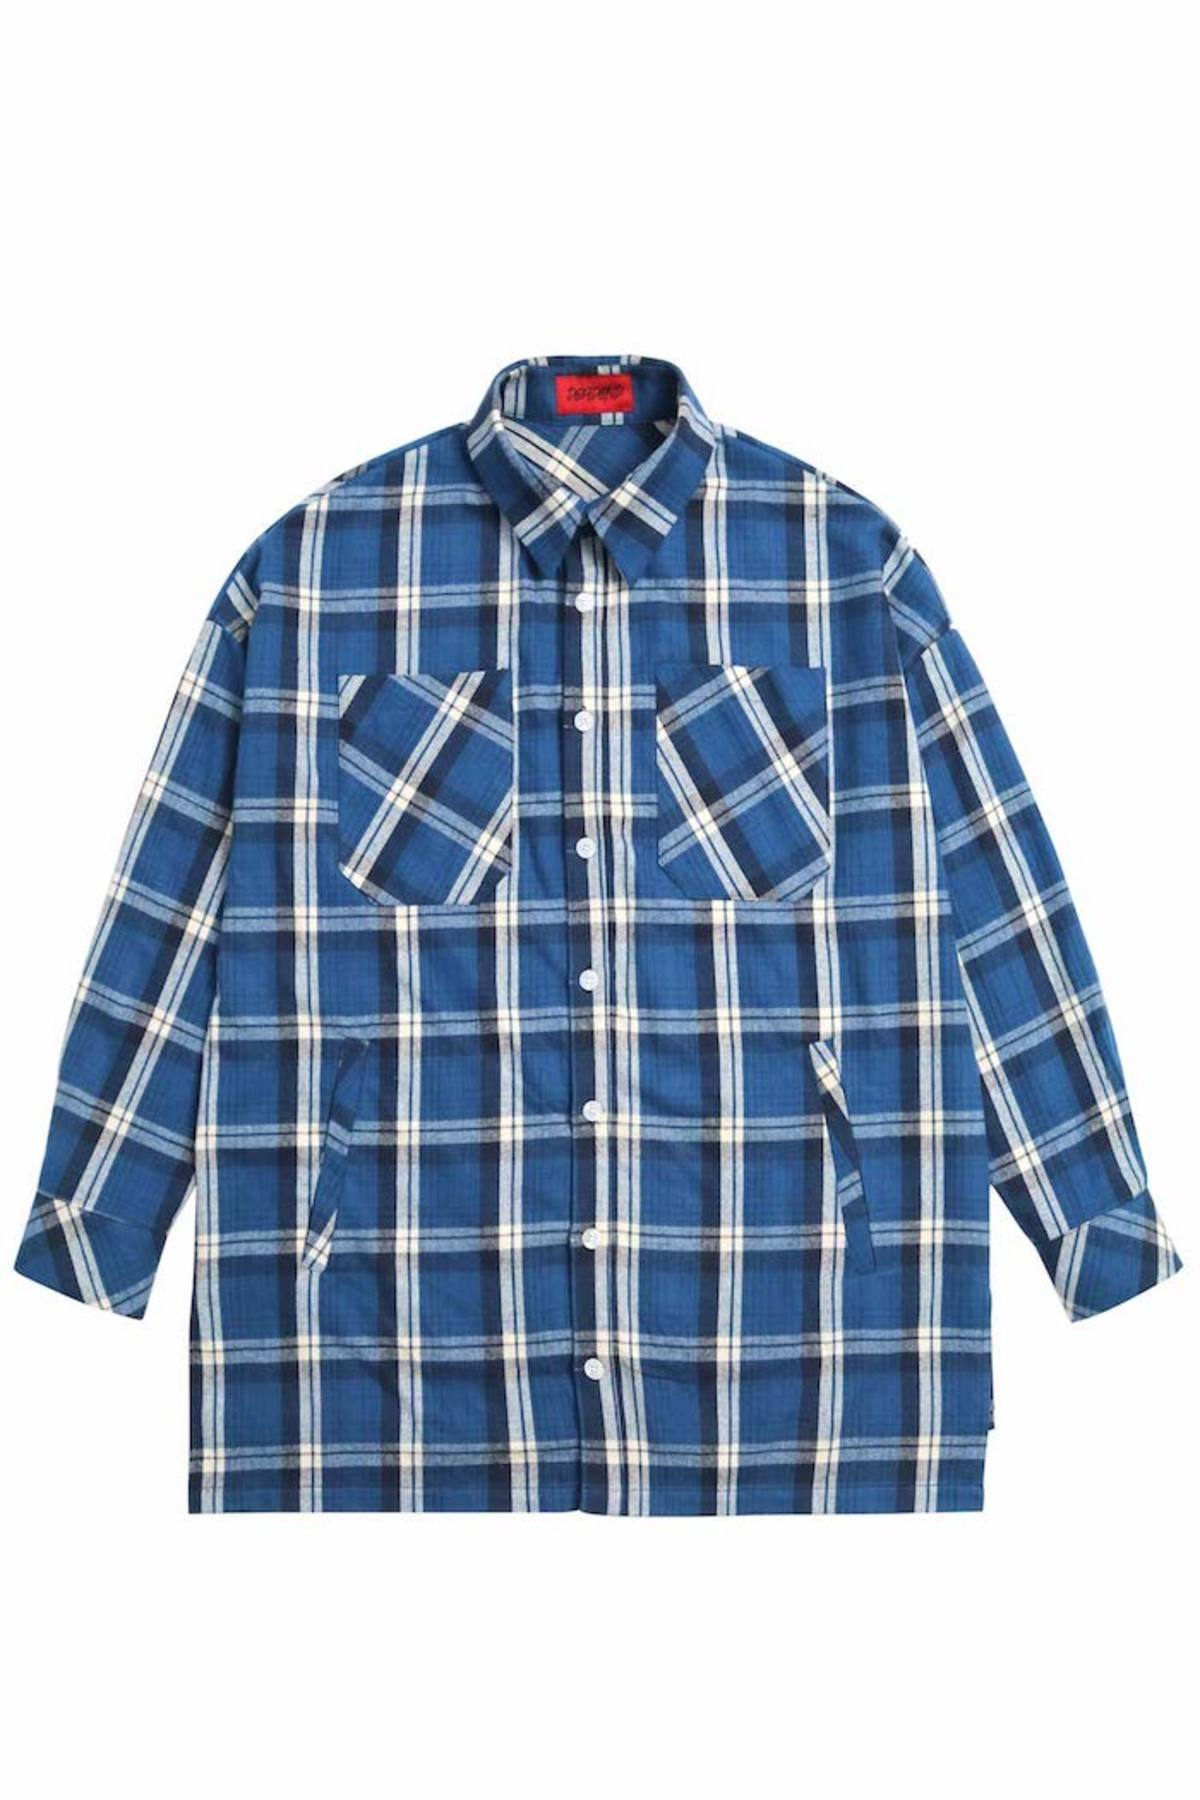 BLUE FLANNEL POCKET SHIRTS V2